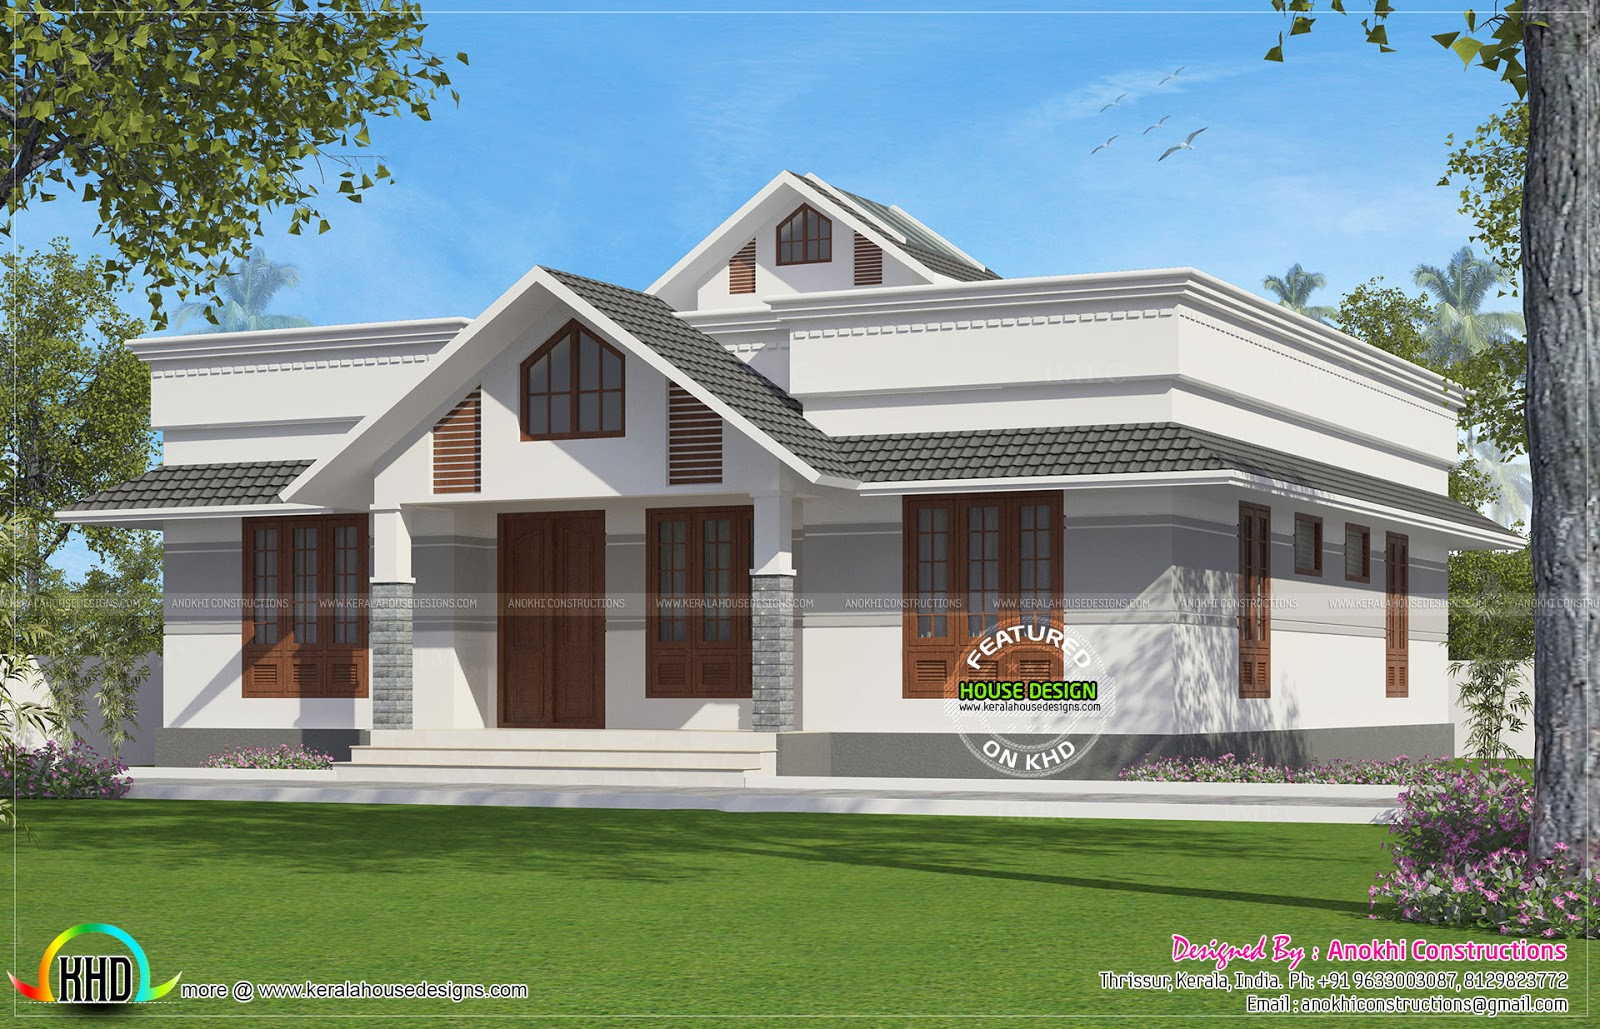 1330 square feet small house plan kerala home design and for Small budget house plans in kerala